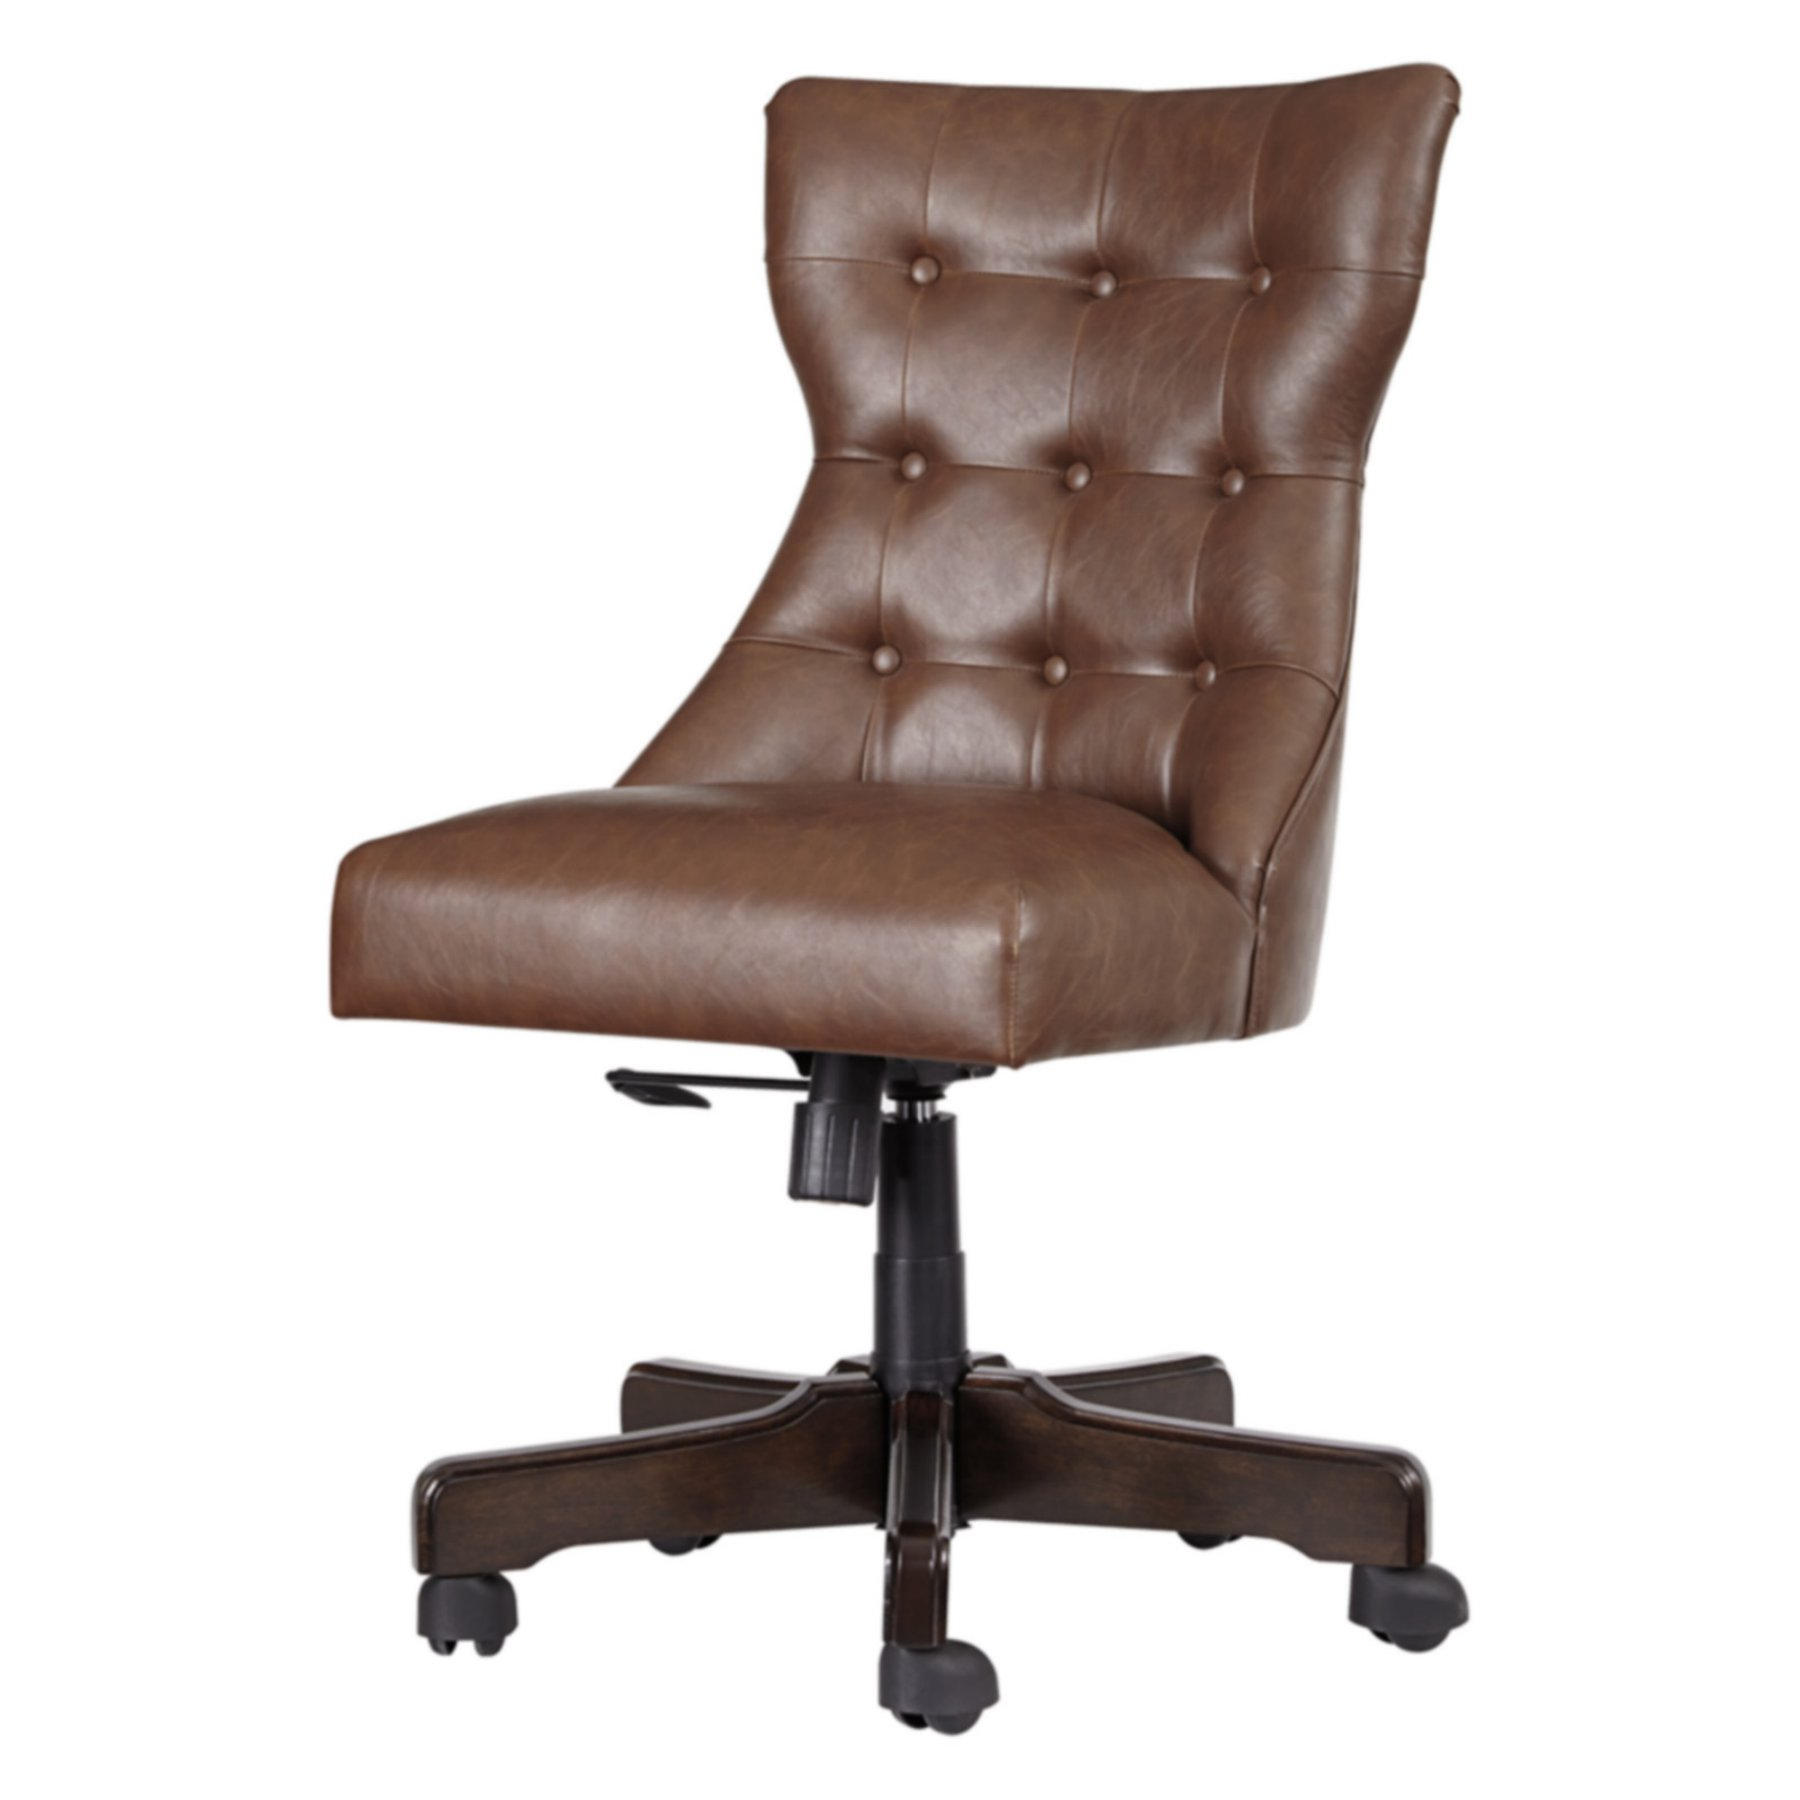 Signature Design by Ashley Home Office Executive Swivel